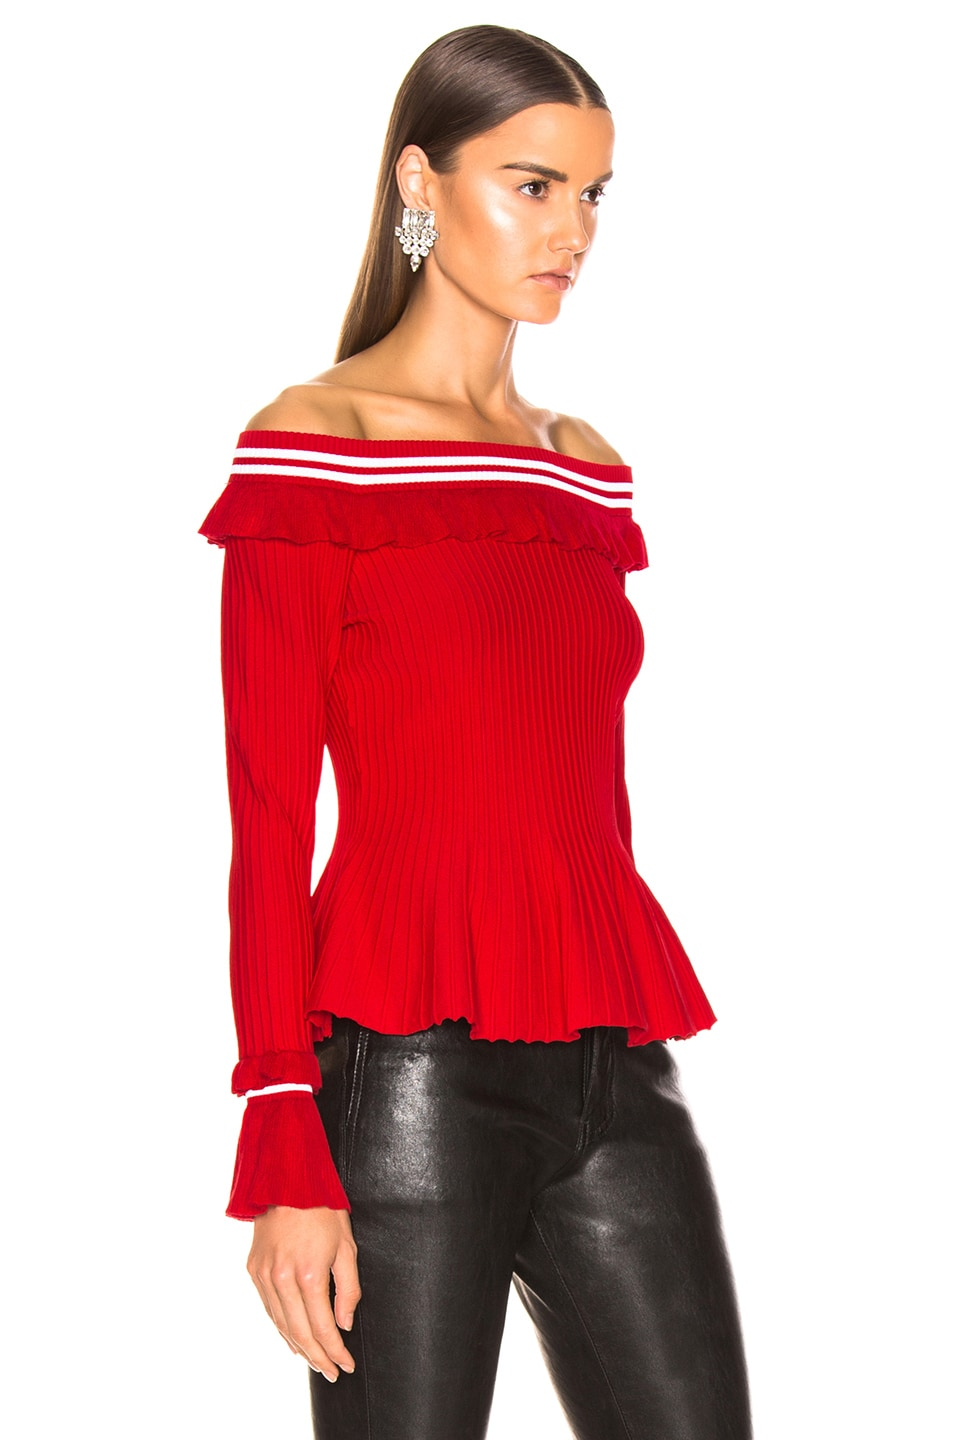 Image 2 of JONATHAN SIMKHAI for FWRD Off the Shoulder Ruffle Top in Red & White